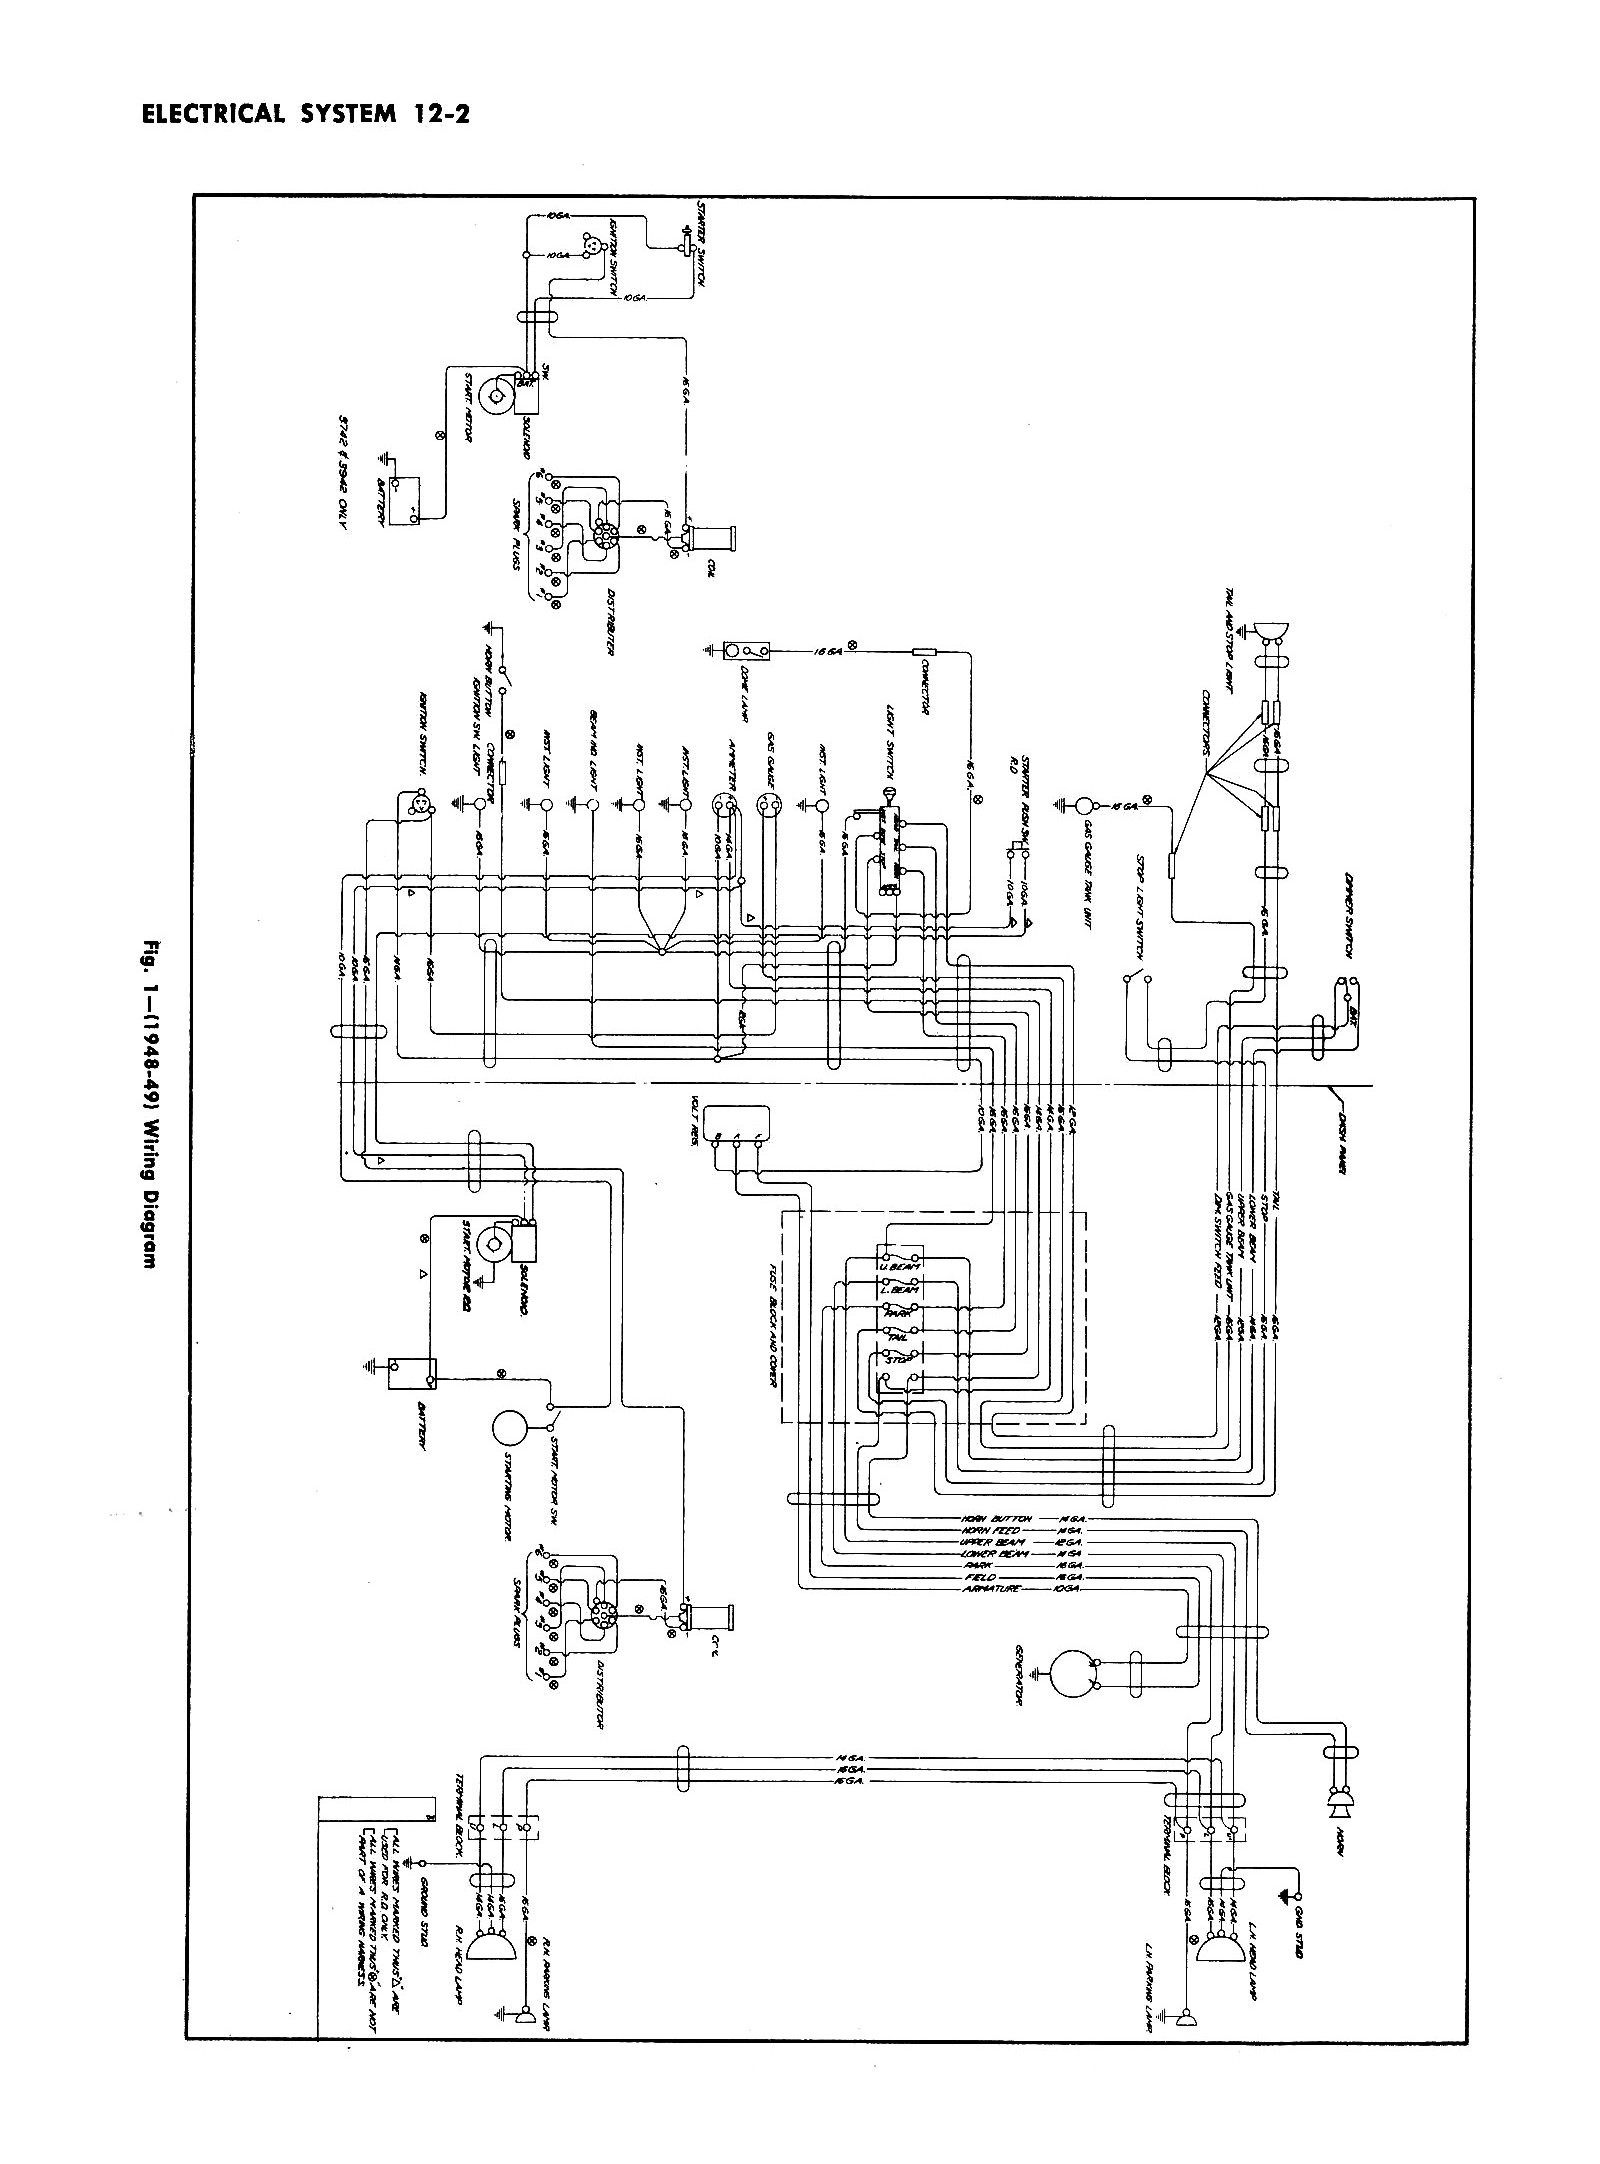 Gmc Wiring Diagrams 3800 Good Guide Of Diagram 2004 Chevy Truck Radio Rh Oldcarmanualproject Com Sierra Schematic